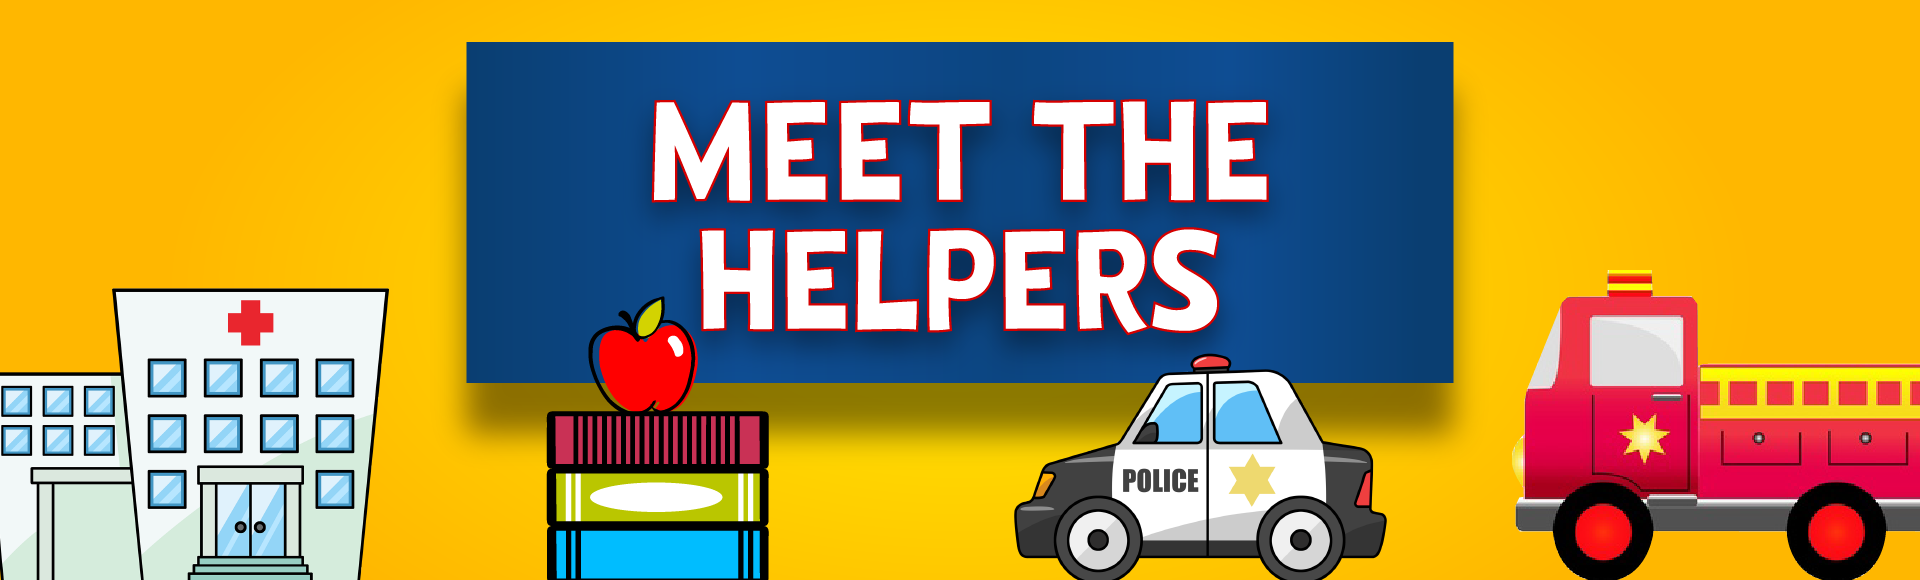 Meet the Helpers | Be a Helper